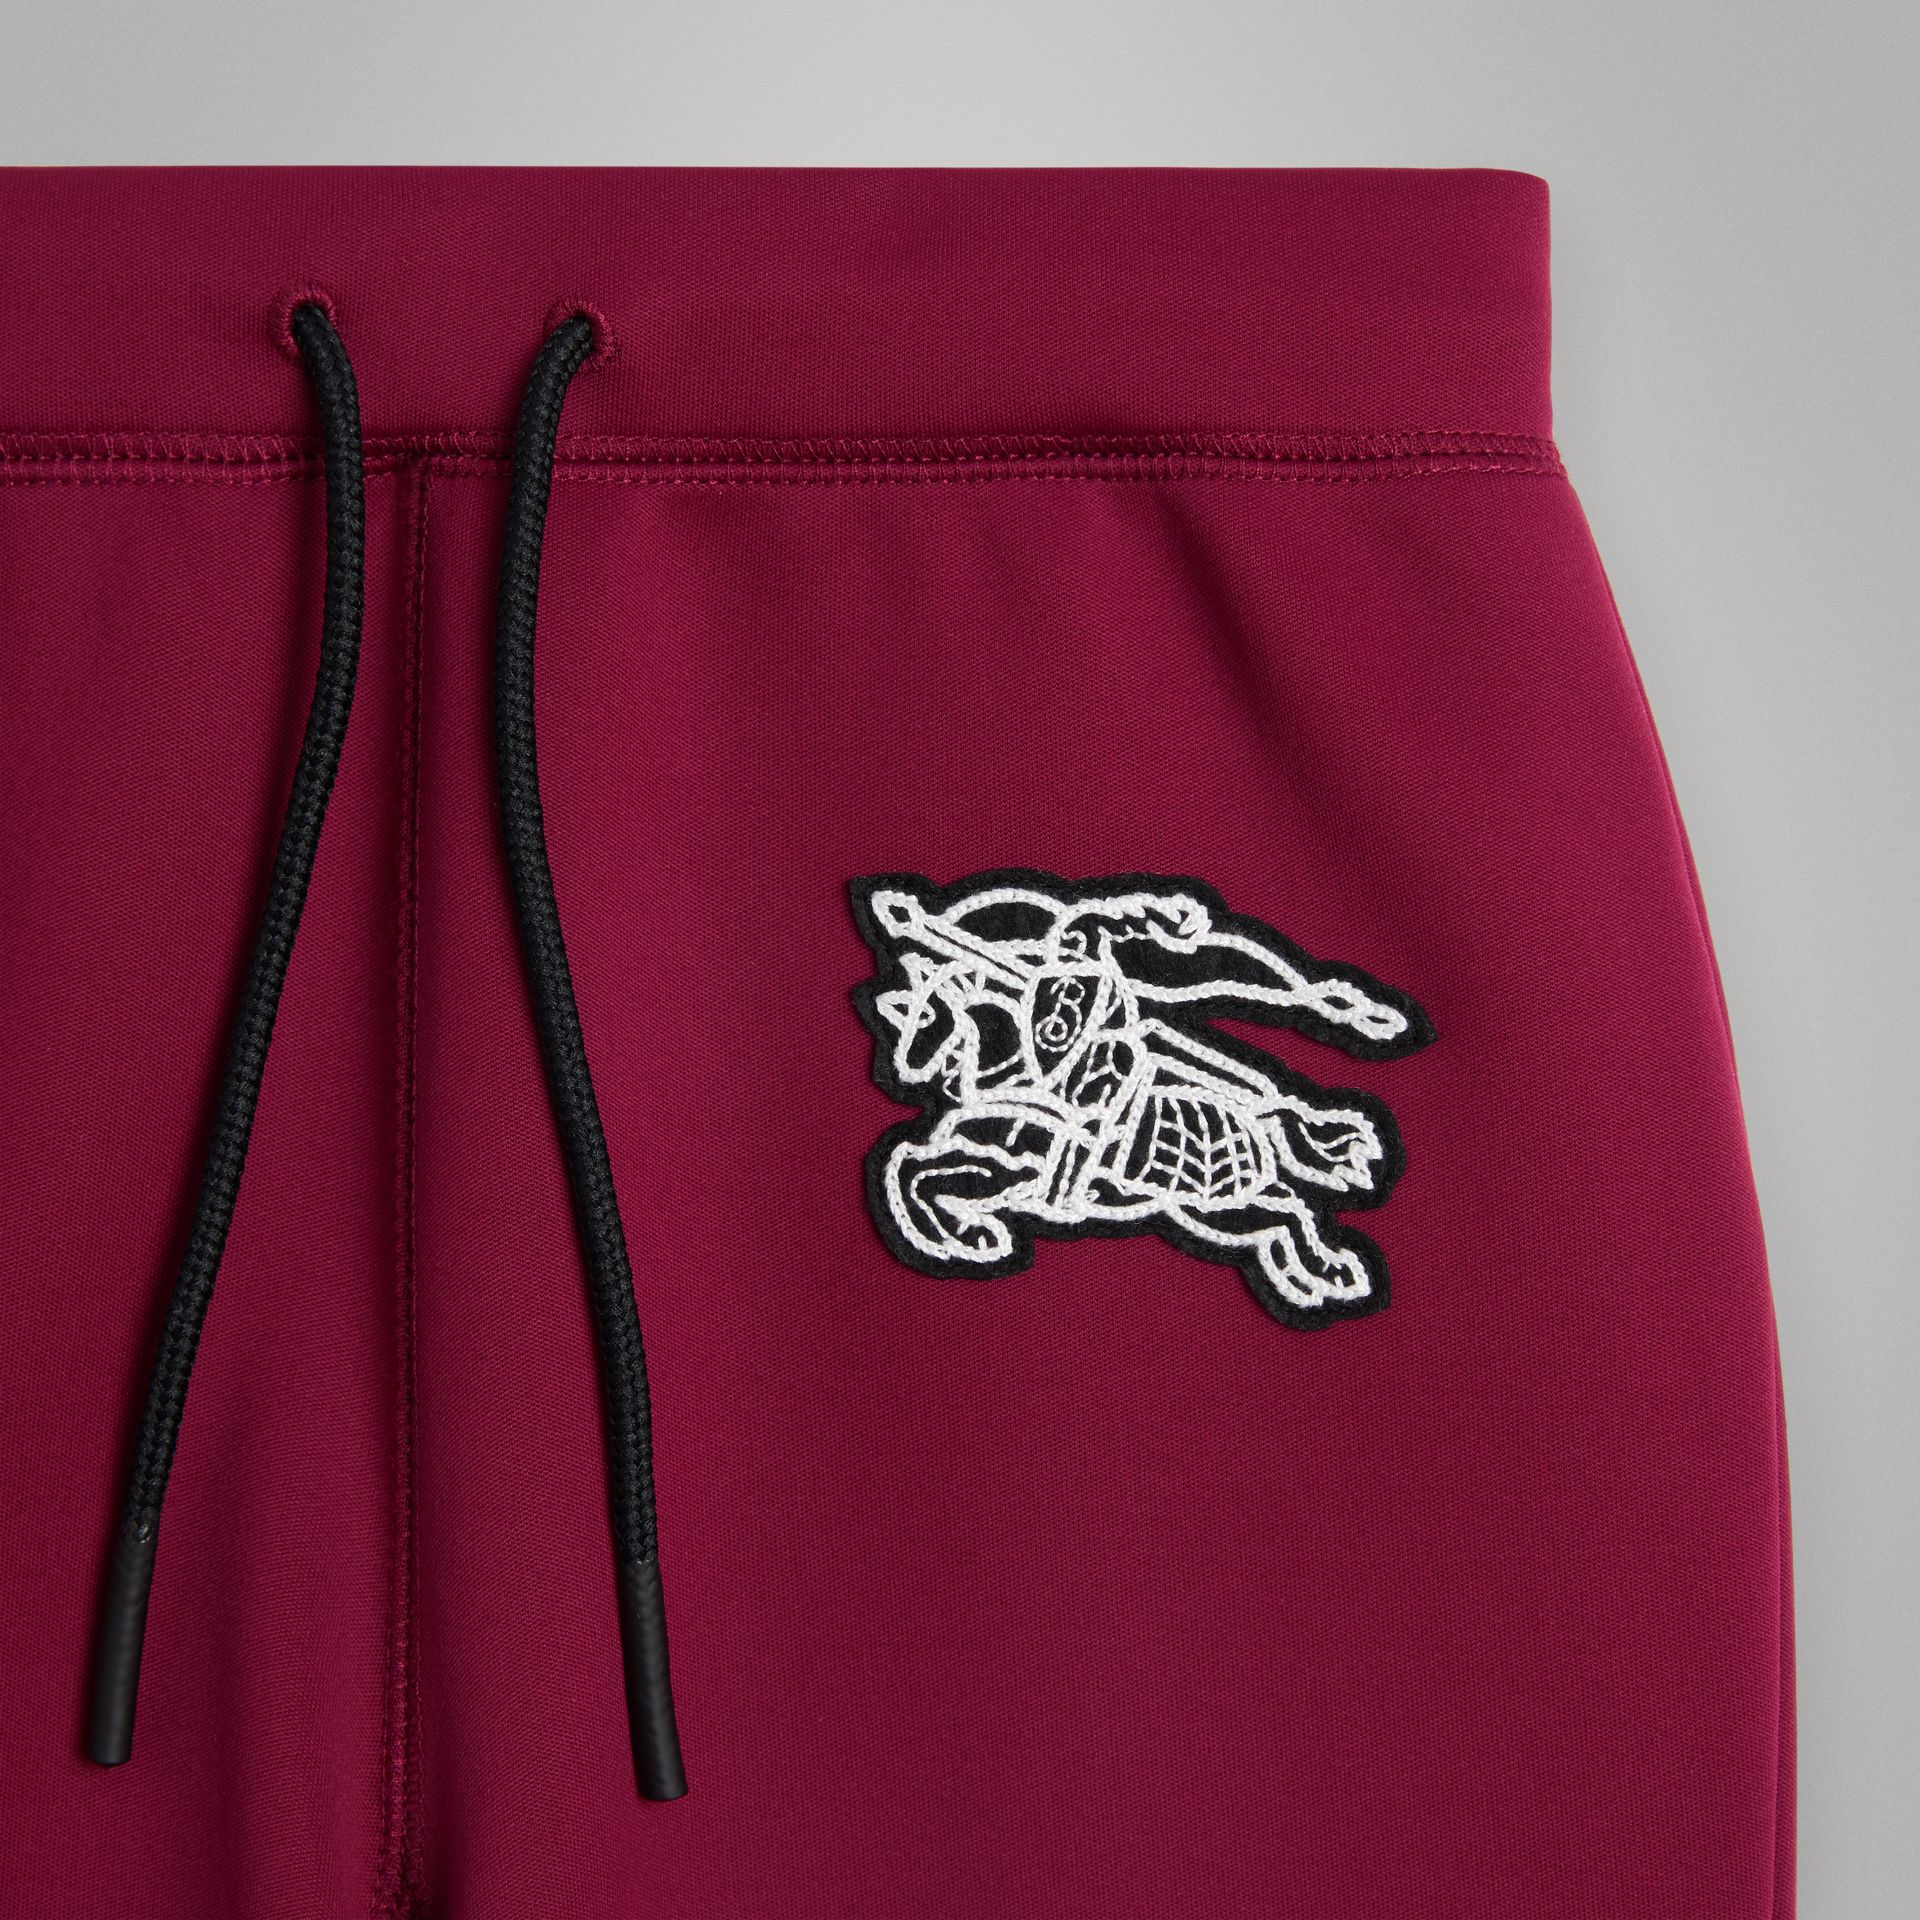 Graffiti Print Jersey Sweatpants in Burgundy | Burberry - gallery image 4